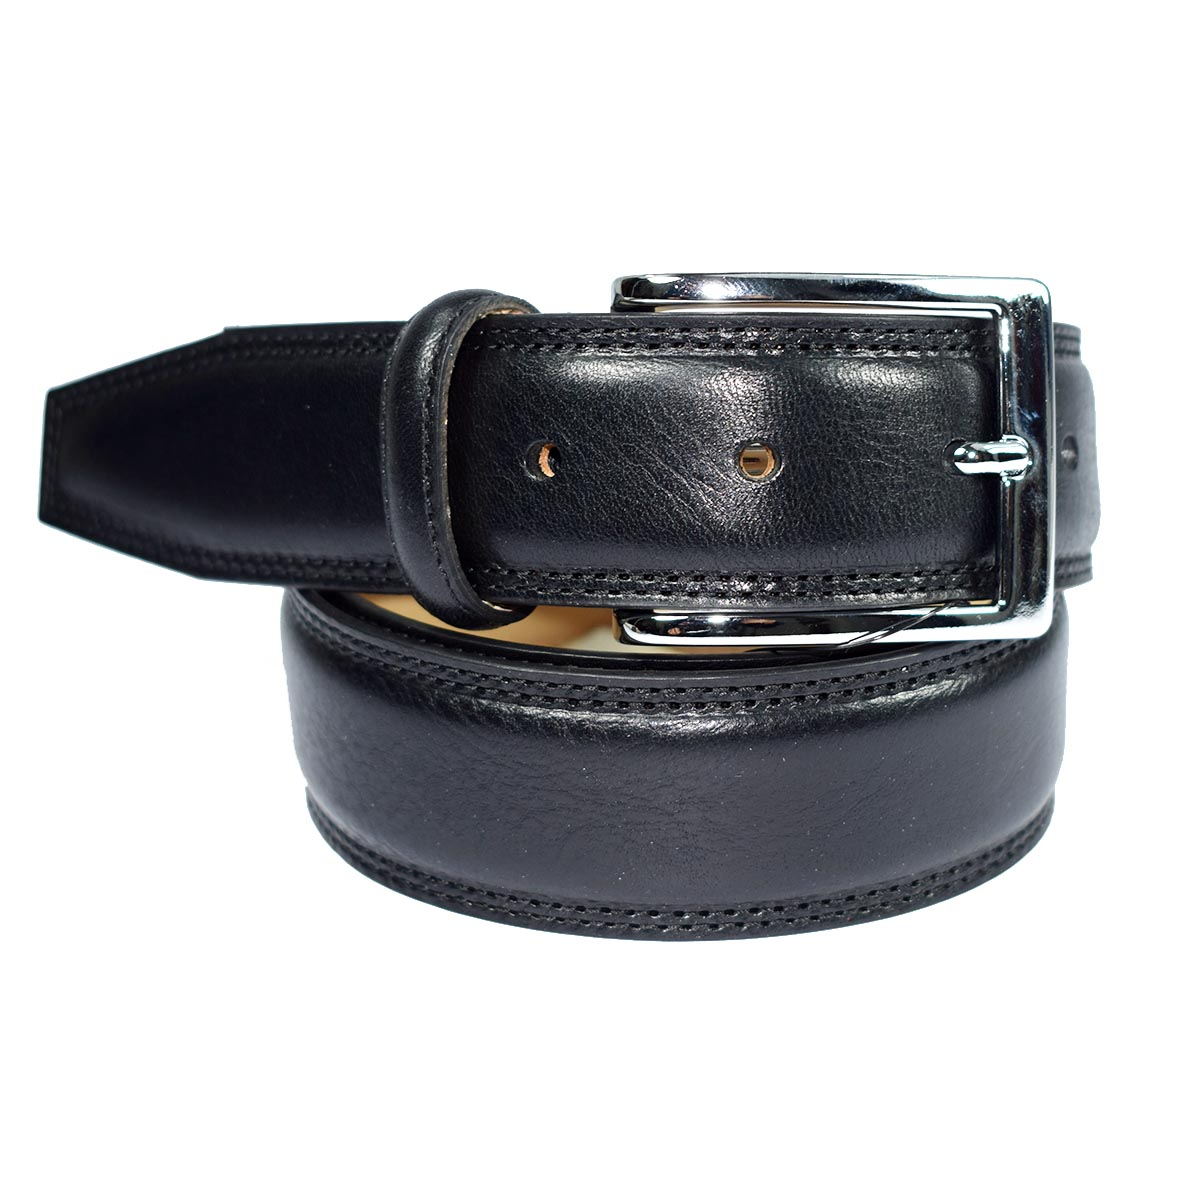 18106935 CLASSIC BELT by Bottega Fiorentina